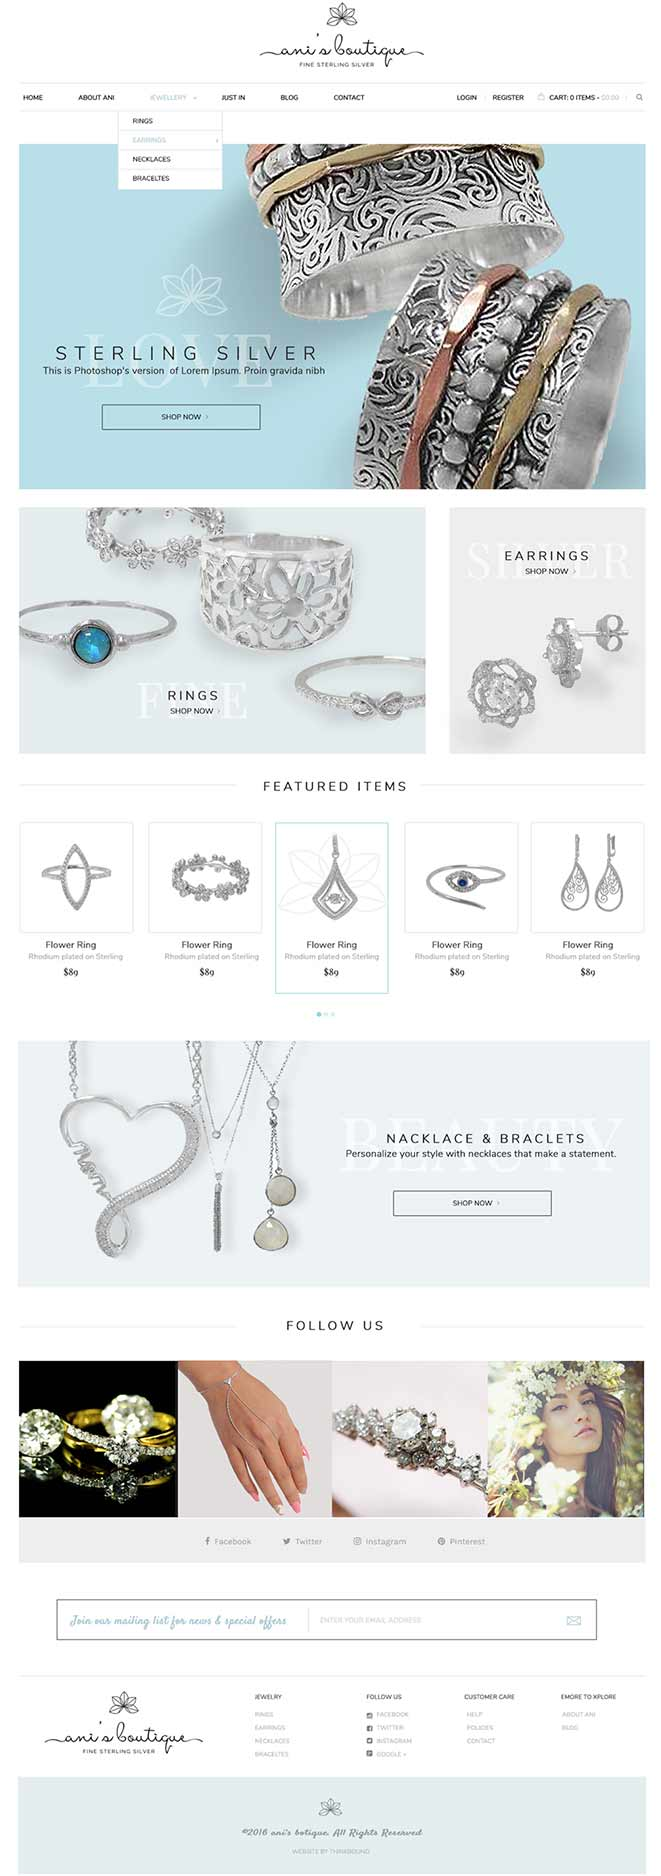 e commerce website design jewelry store